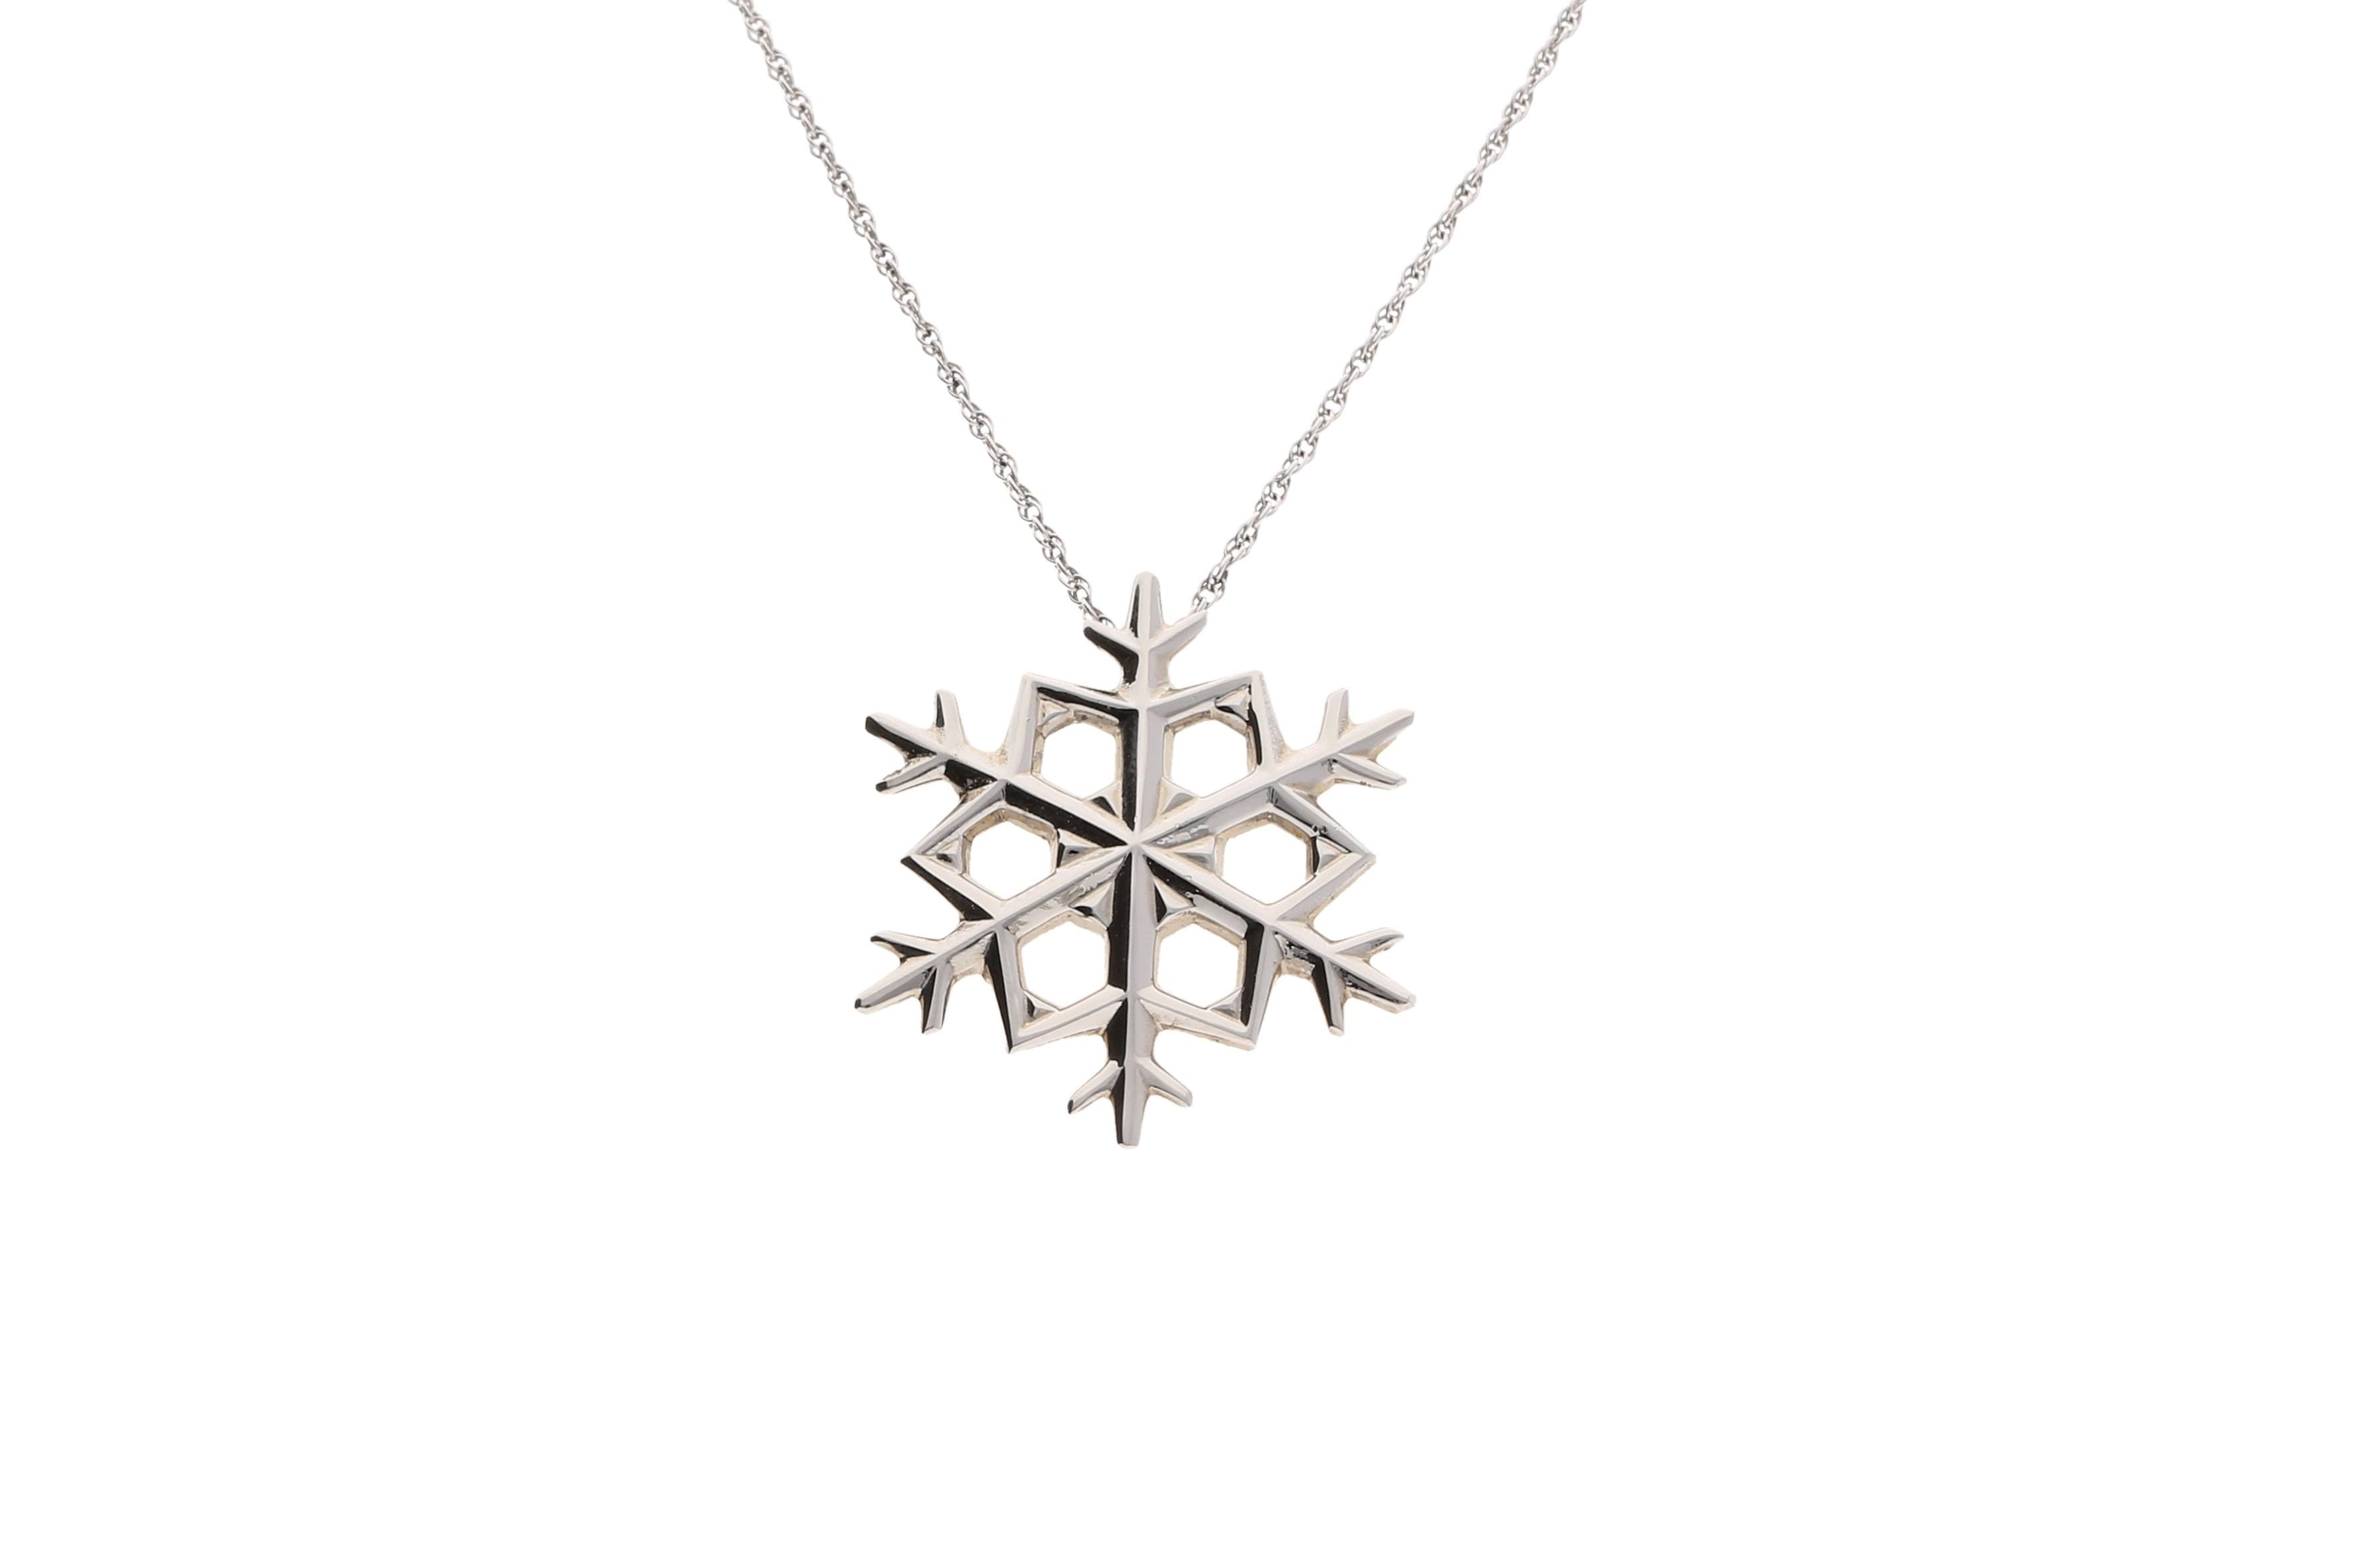 Gorham Sterling Necklace and Pendant